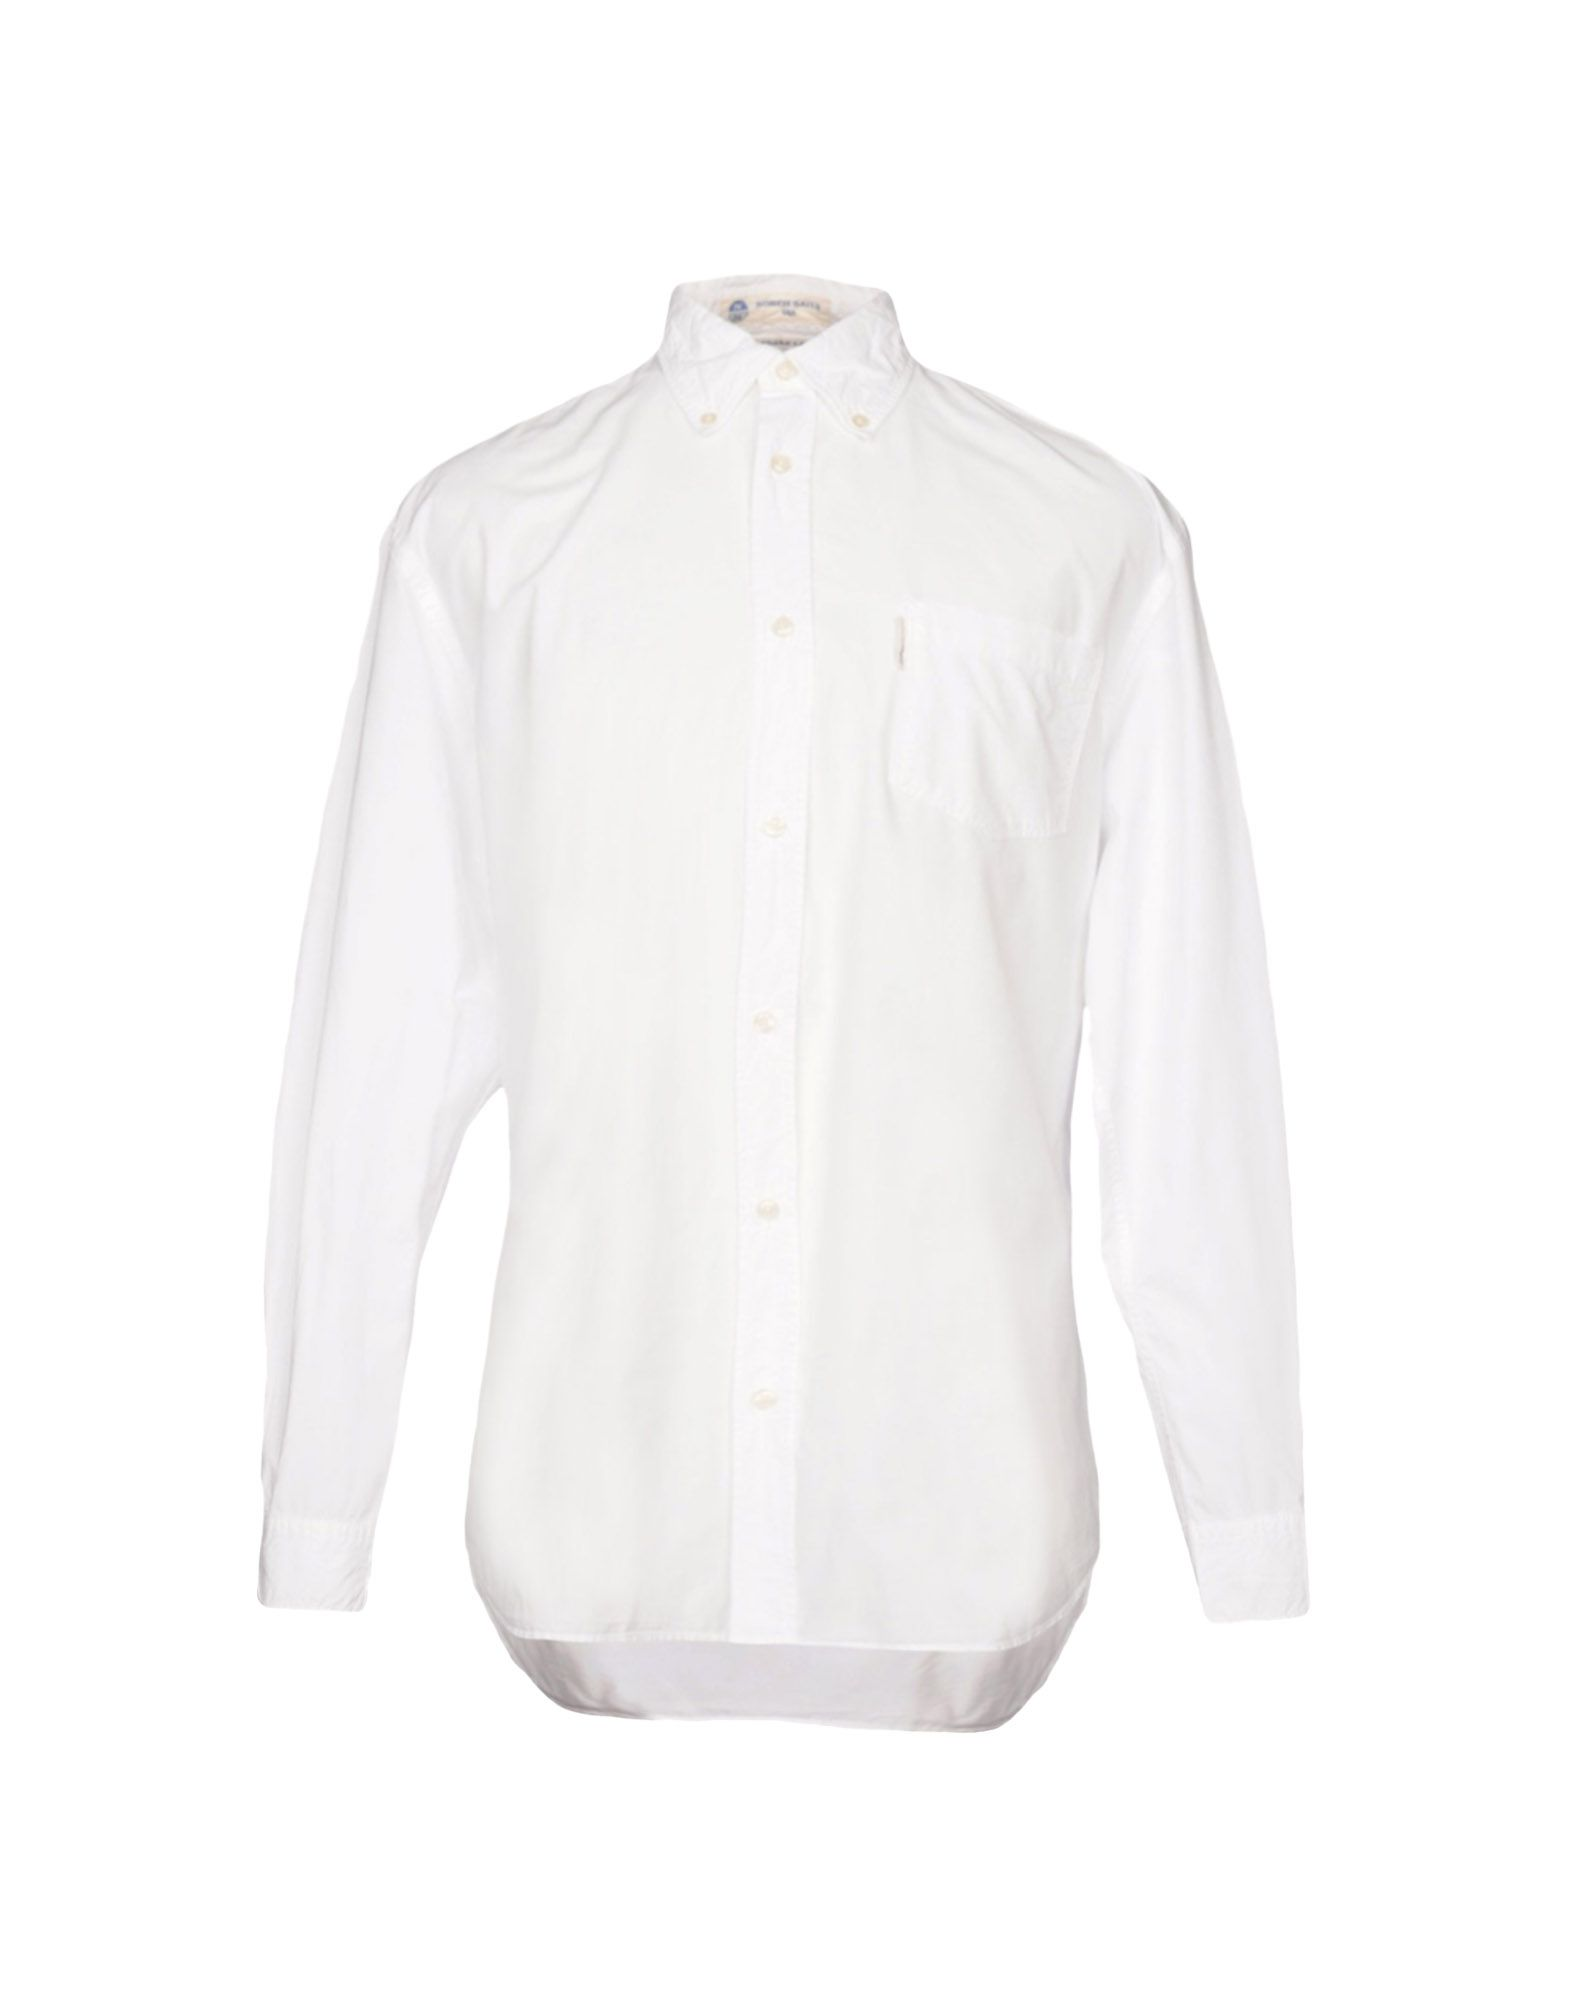 NORTH SAILS Solid Color Shirt in White